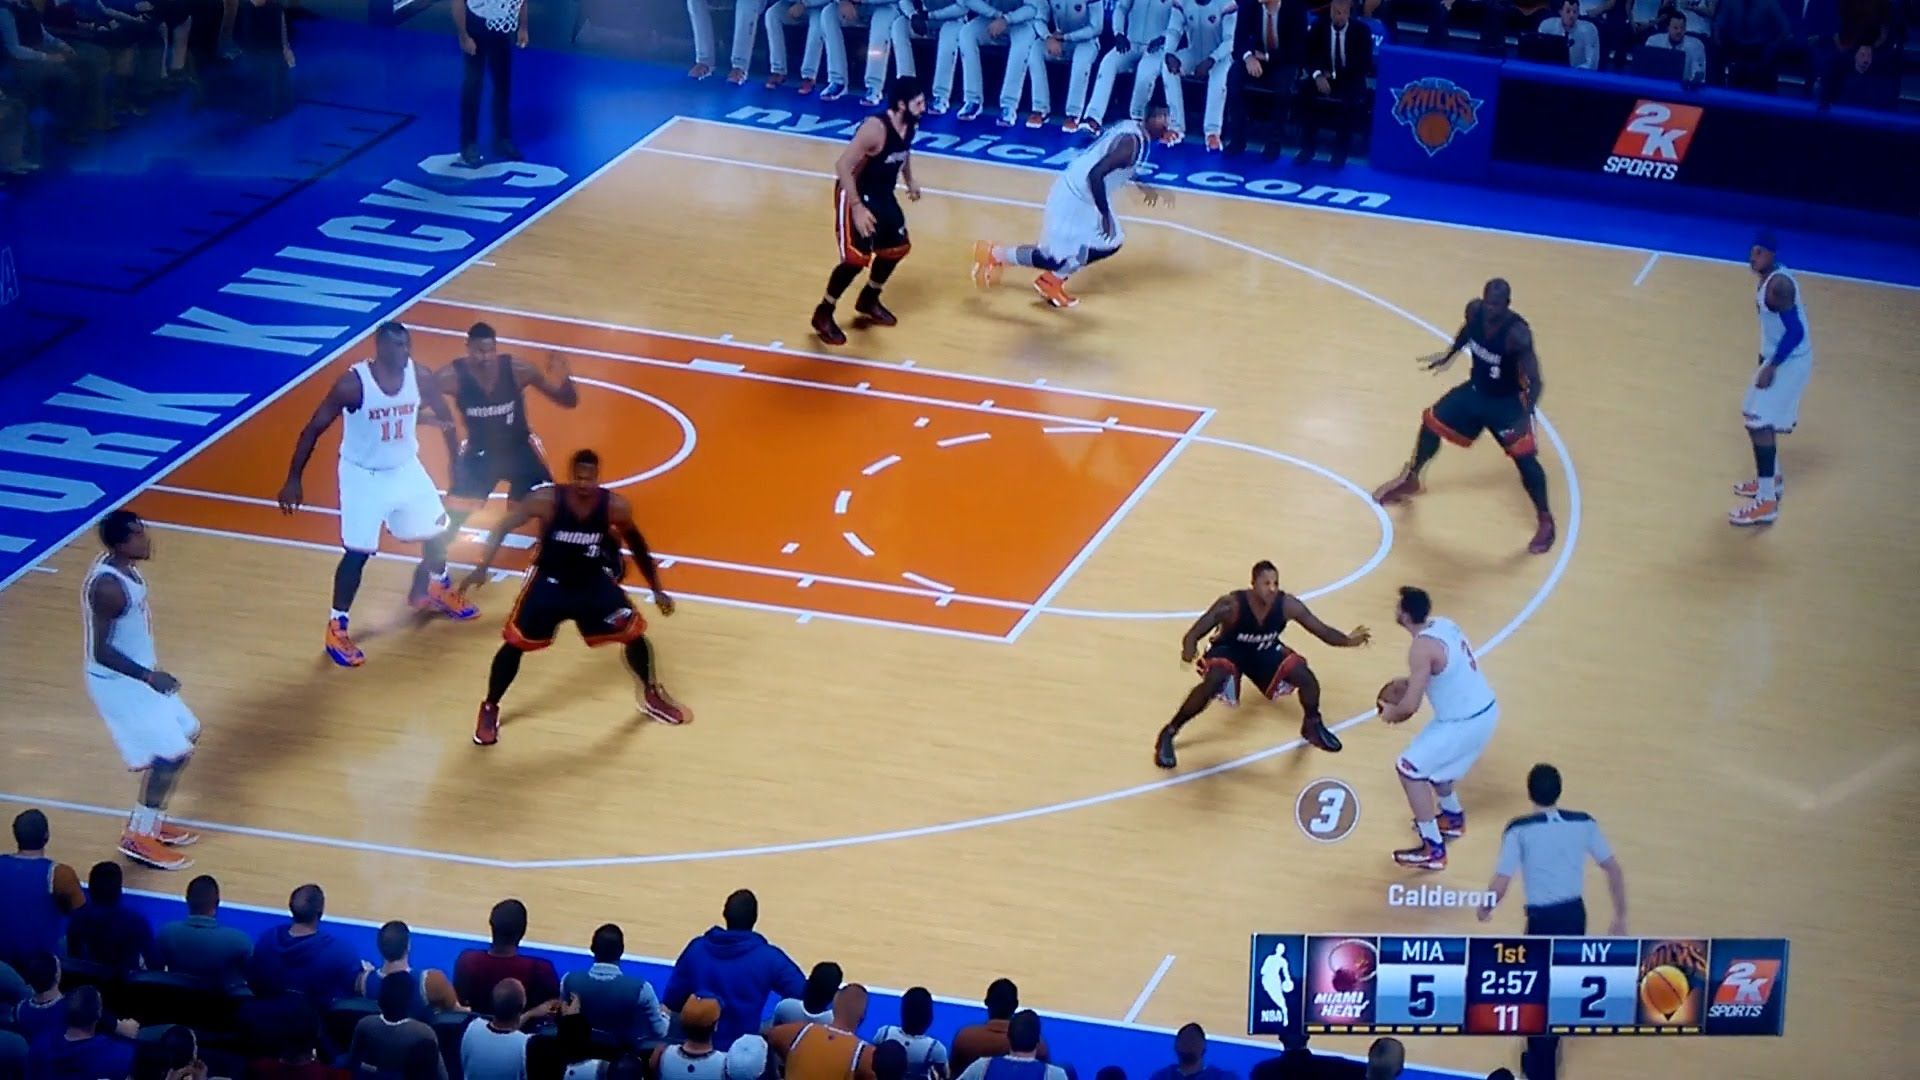 NBA 2K15 Free Download PC Games Gaming pc, Pc games download